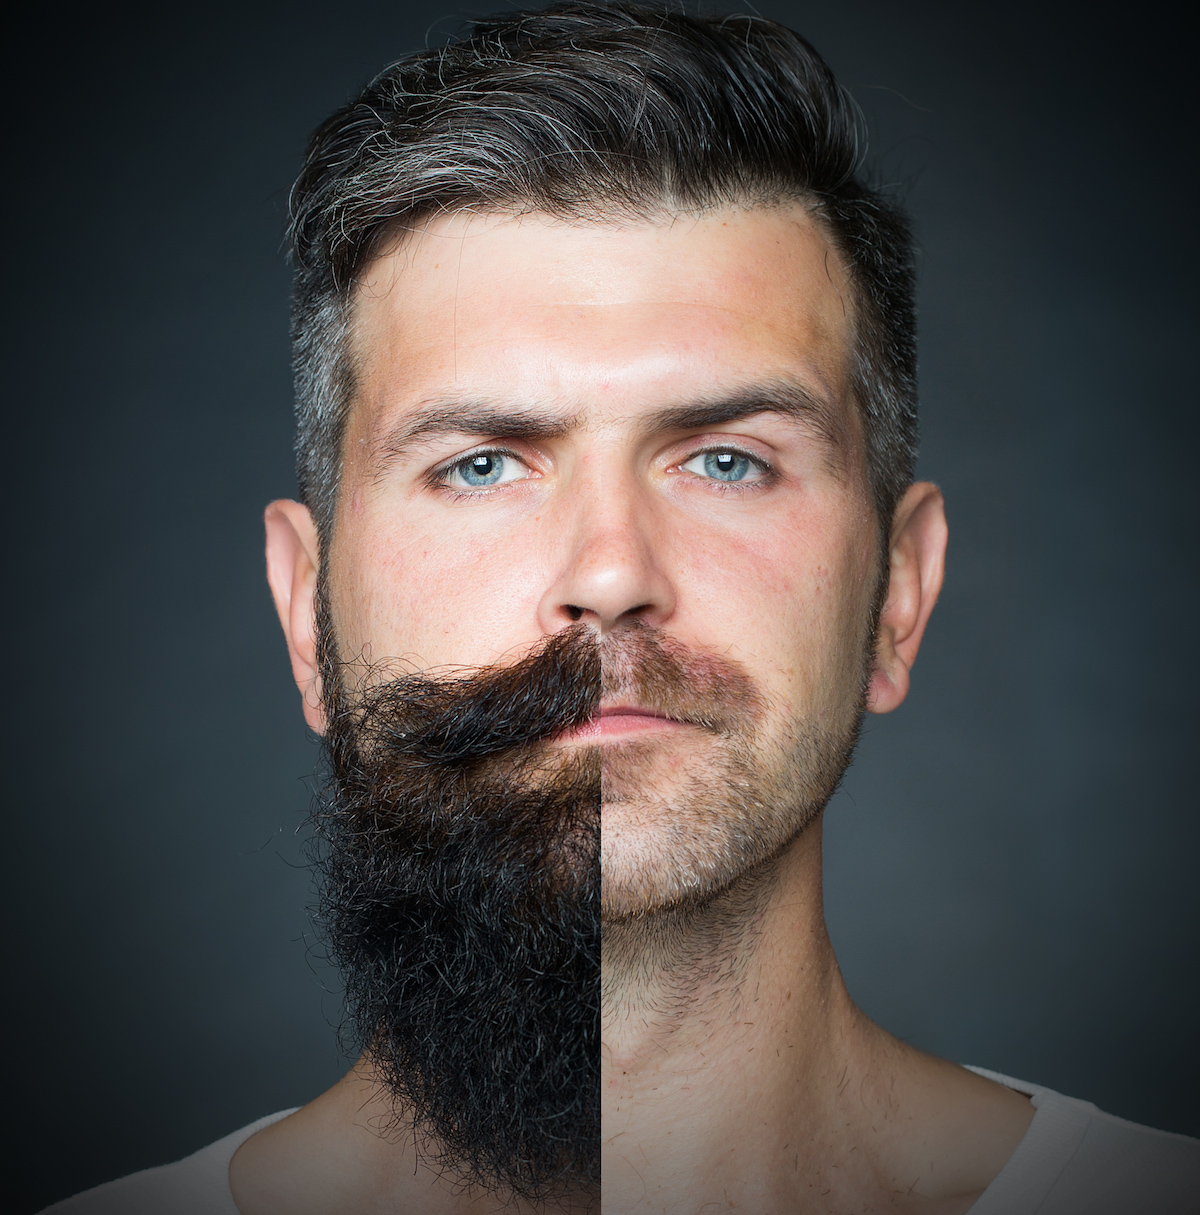 pictures of facial hair styles top 4 beard trends 2018 beard styles turning heads in the 8731 | Rotation of Facial Hair Styles 2018 Beard Trends